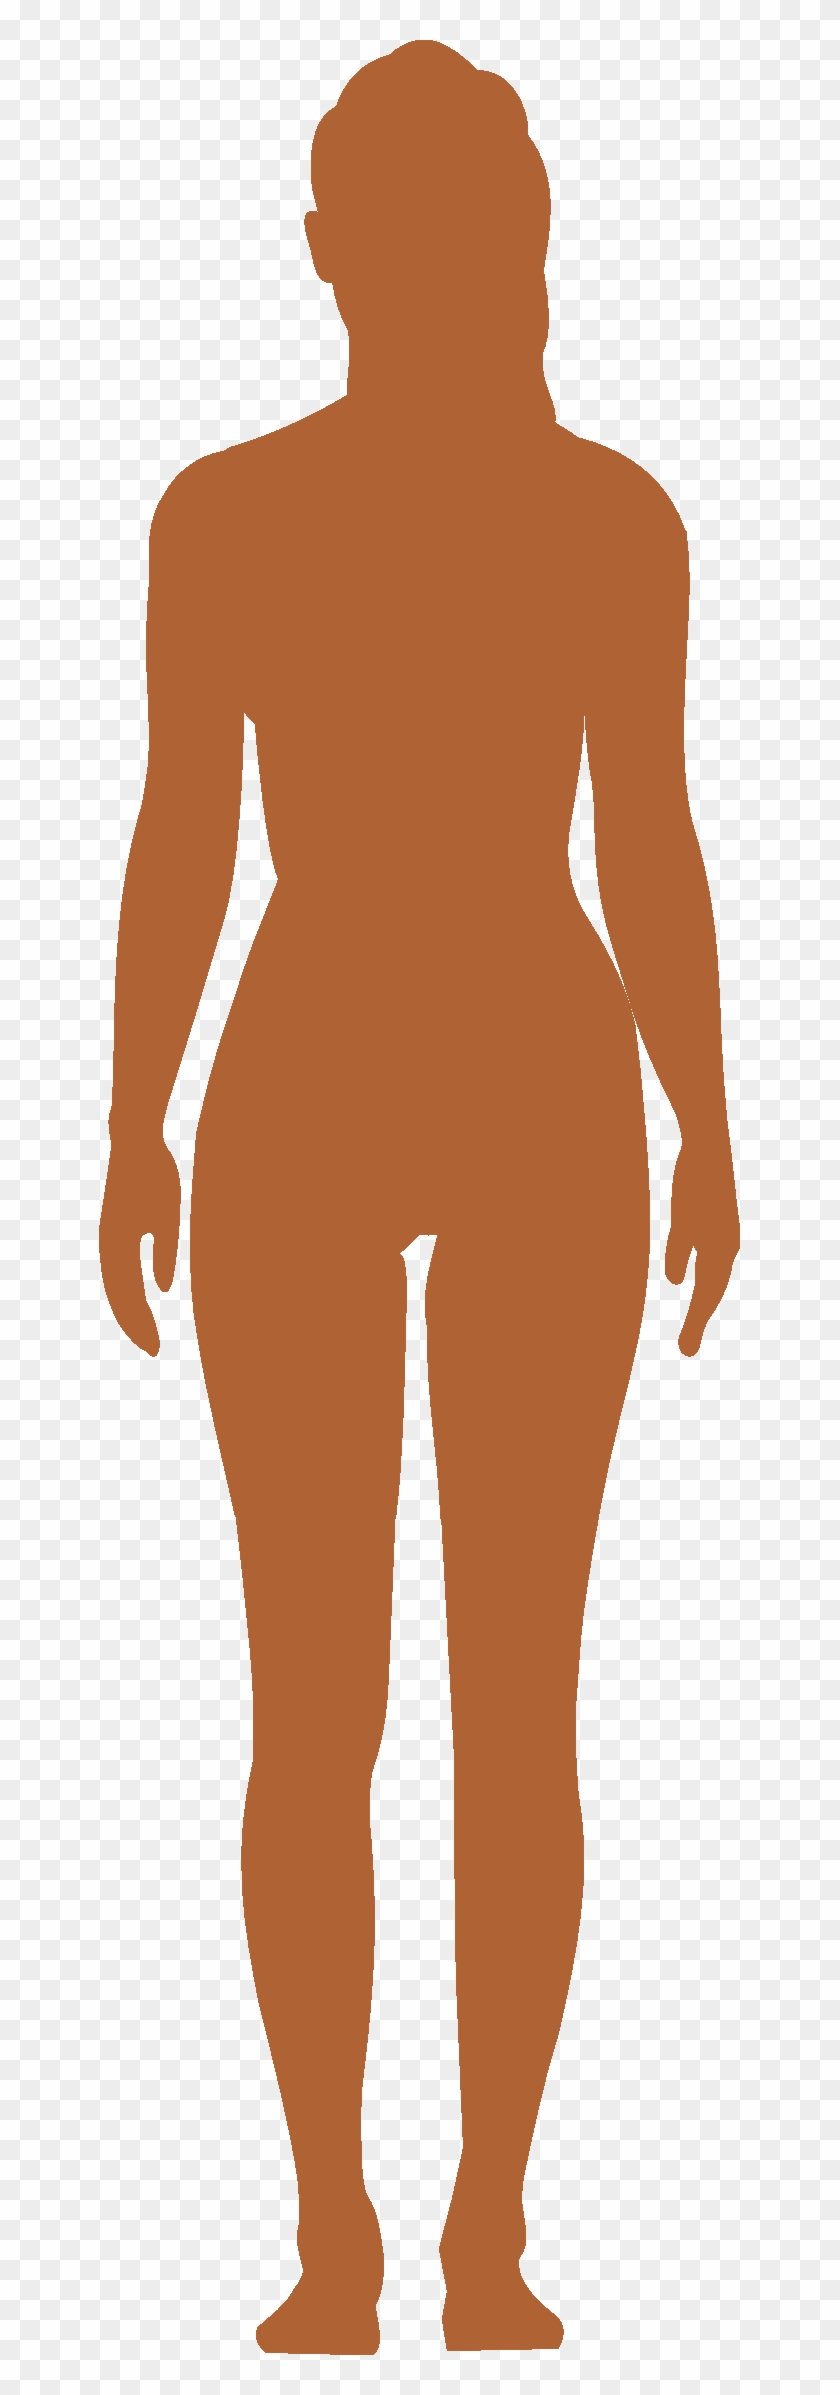 Body Png Picture Female Body Vector Png Transparent Png 641x2315 818446 Pngfind